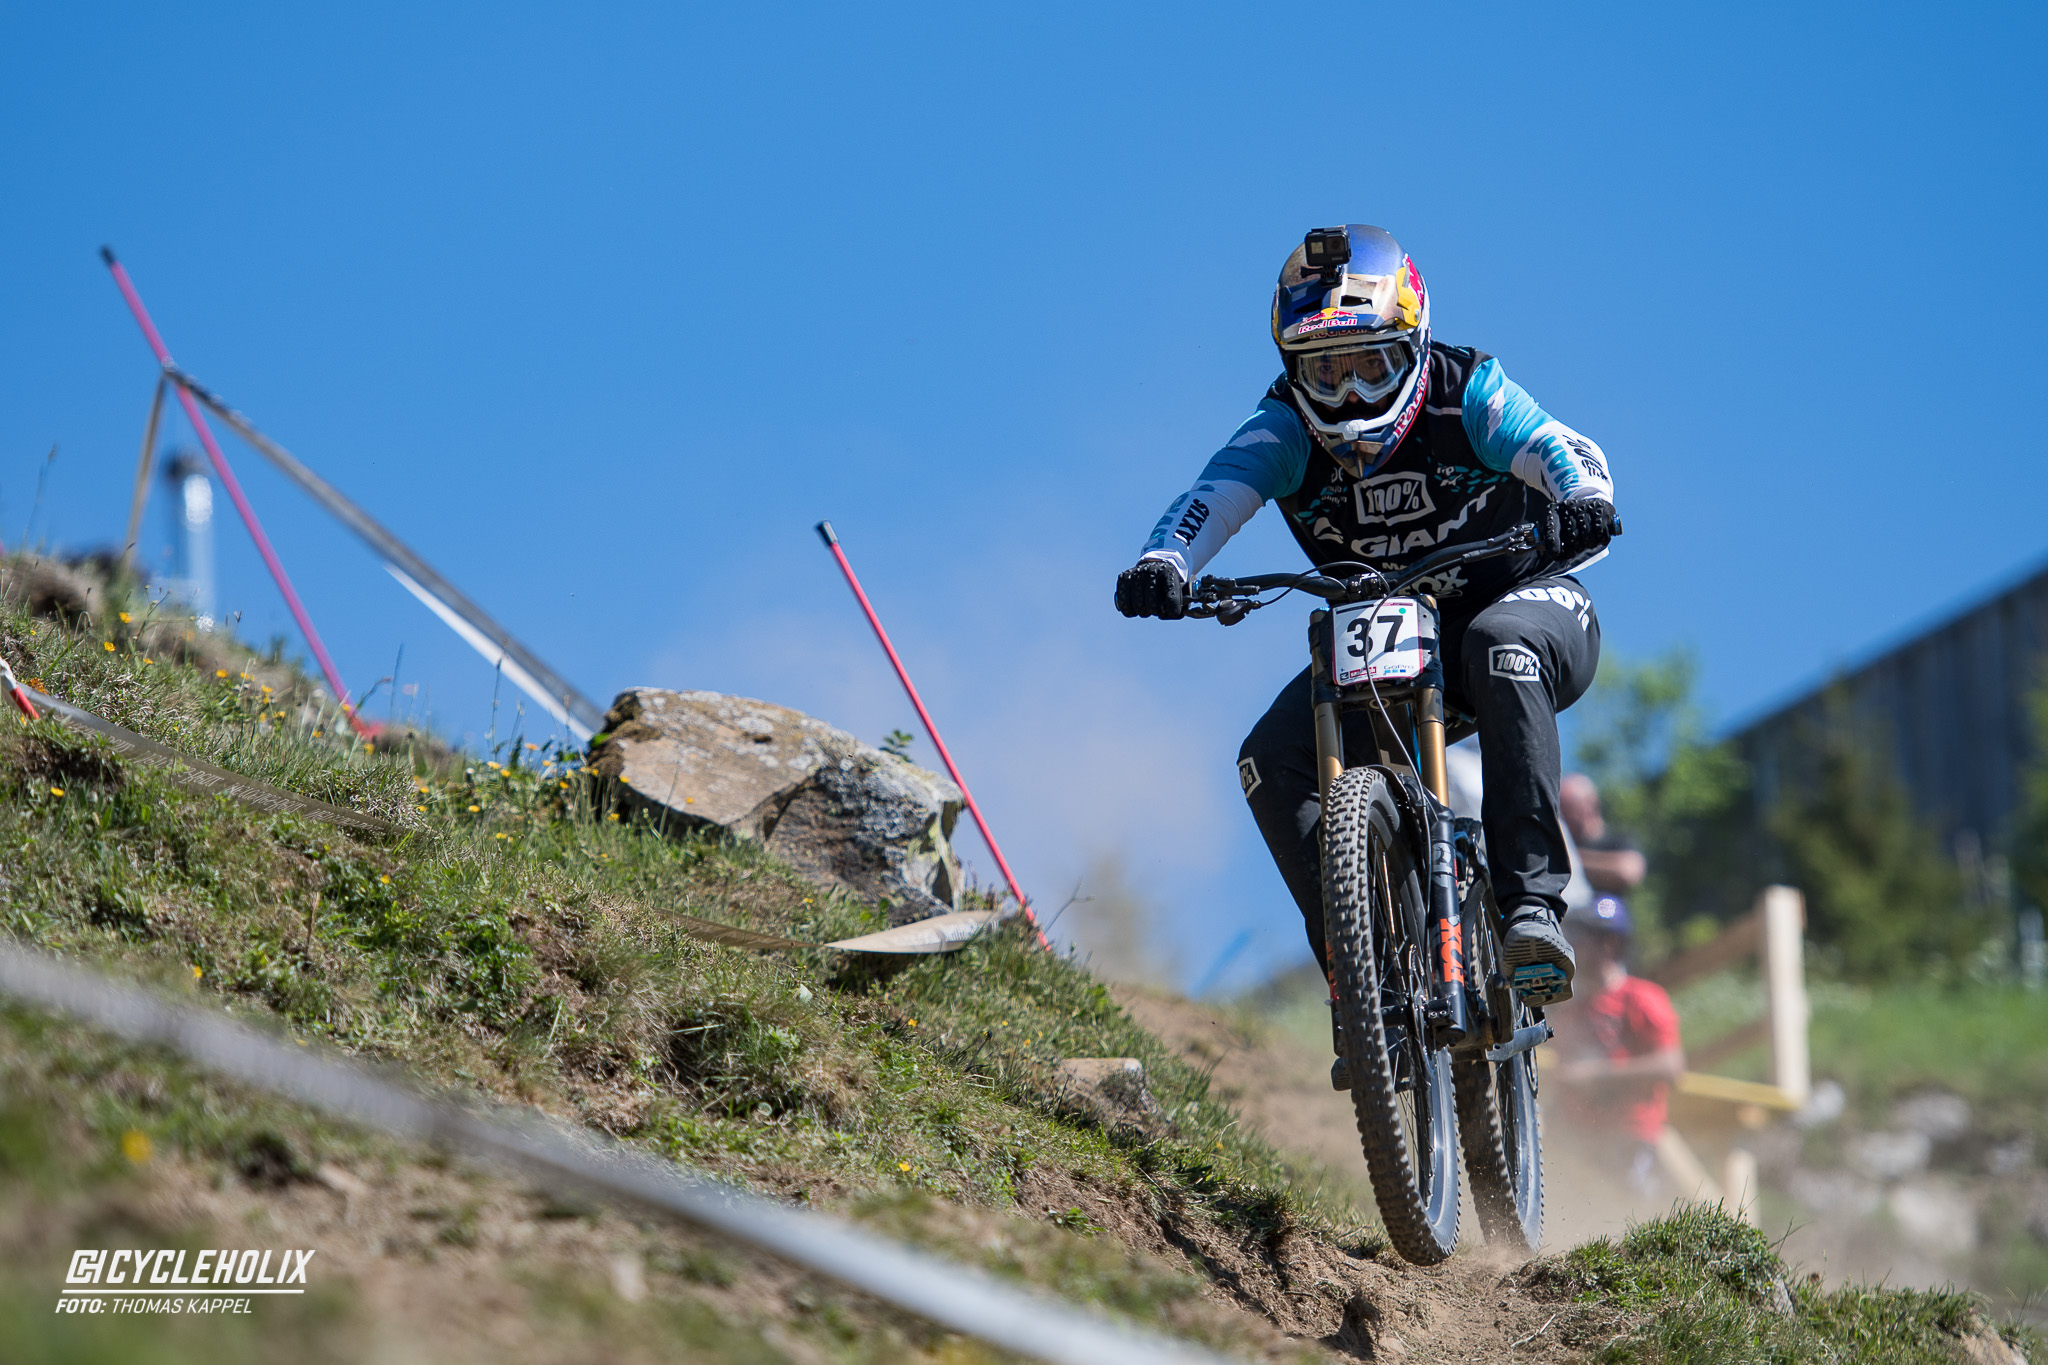 2019 Downhill Worldcup Leogang Finale Action B 2 Cycleholix